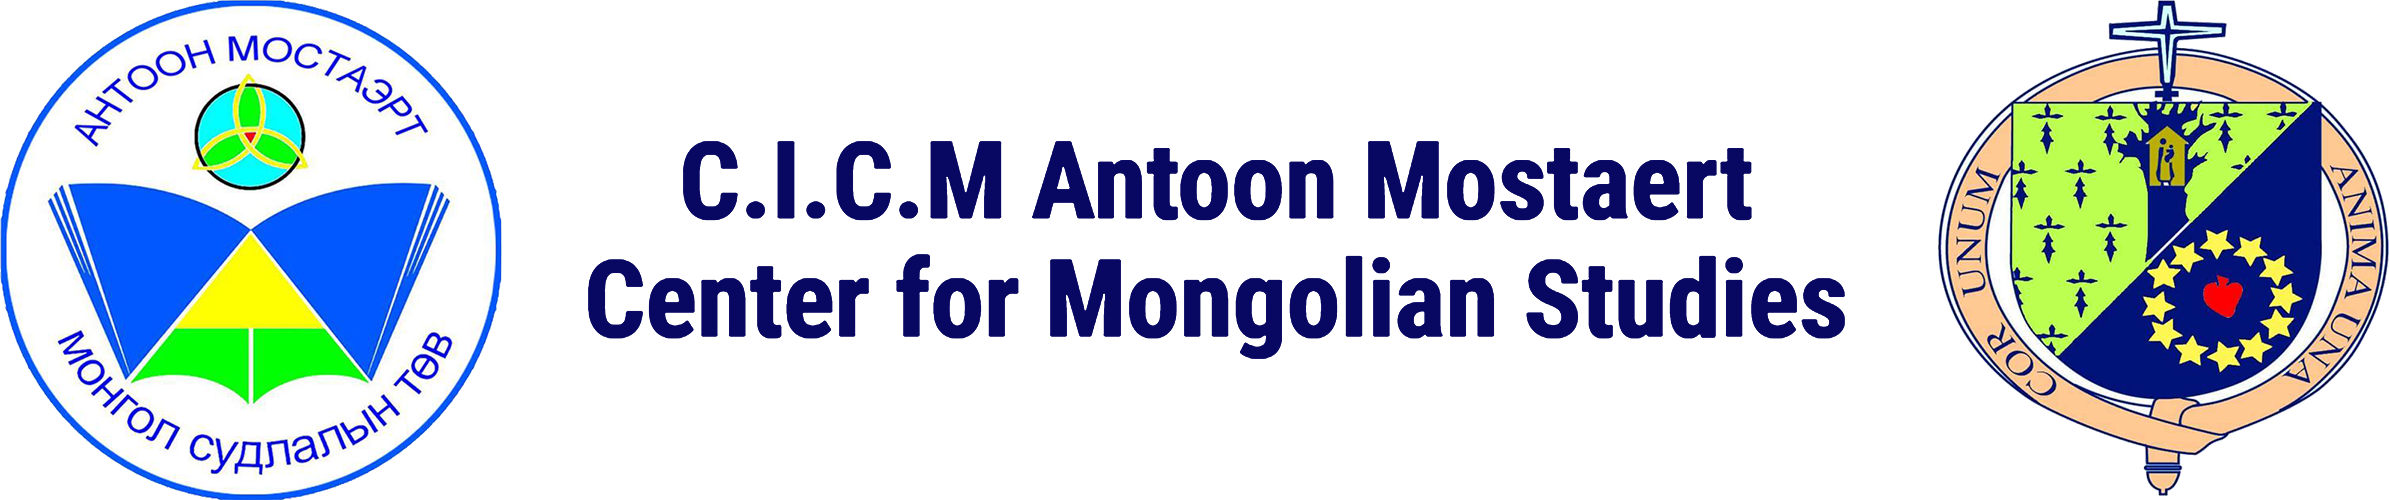 Antoon Mostaert | Center for Mongolian Studies